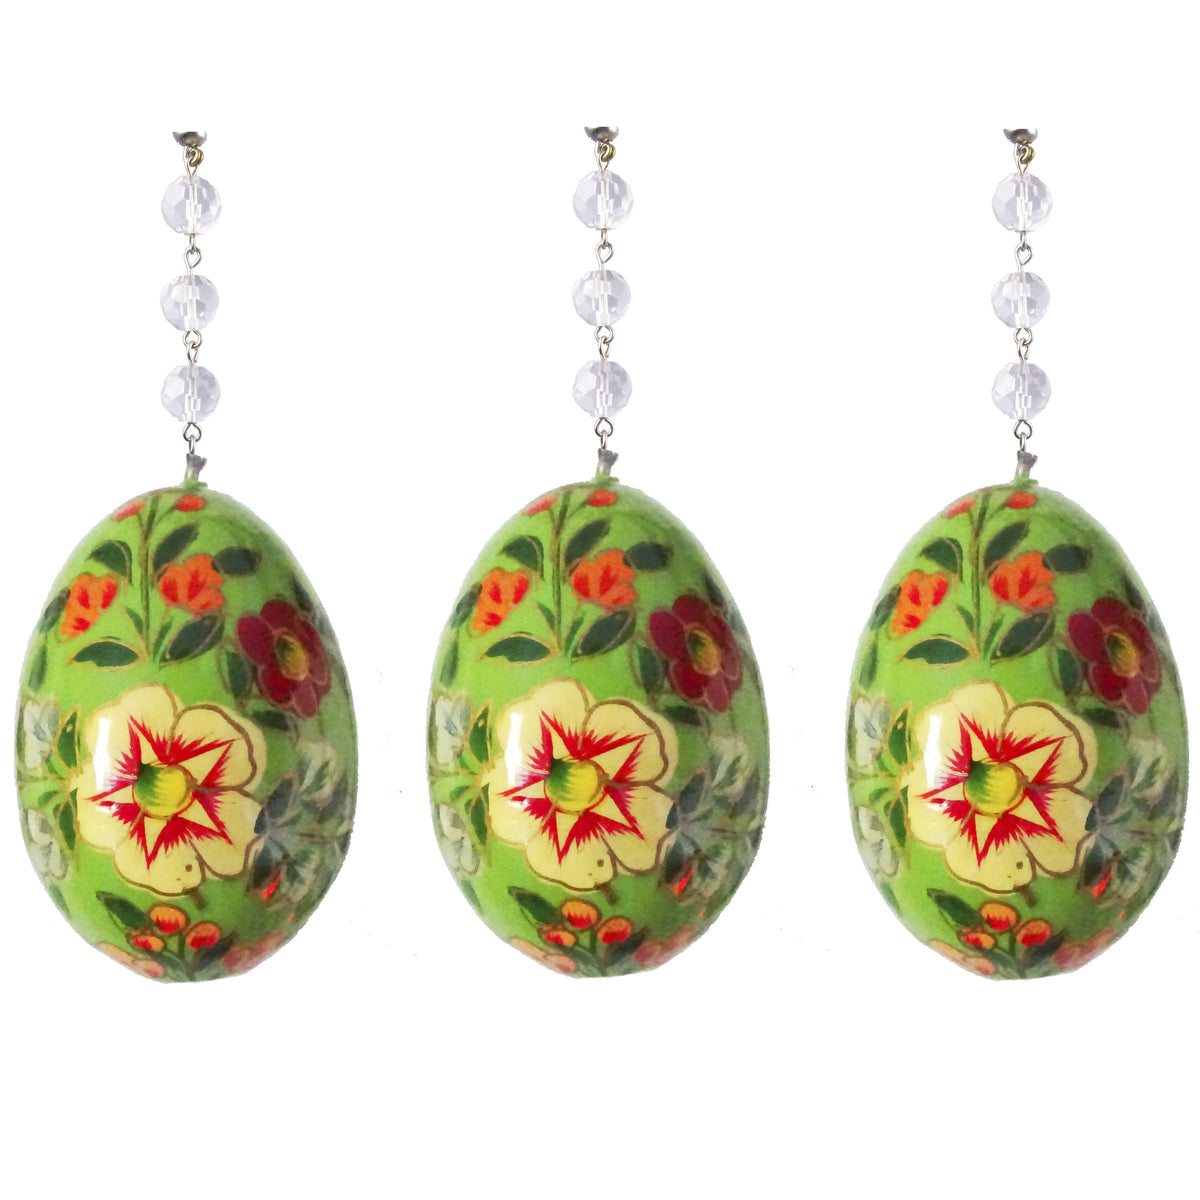 Green Floral Egg - Yellow Flower - MAGNETIC SPRING ORNAMENT - Magnetic Chandelier Accessory TrimKit® ( Set/3) Chandelier Crystals | Magnetic Crystals | Lamp Crystals MagTrim Set/3